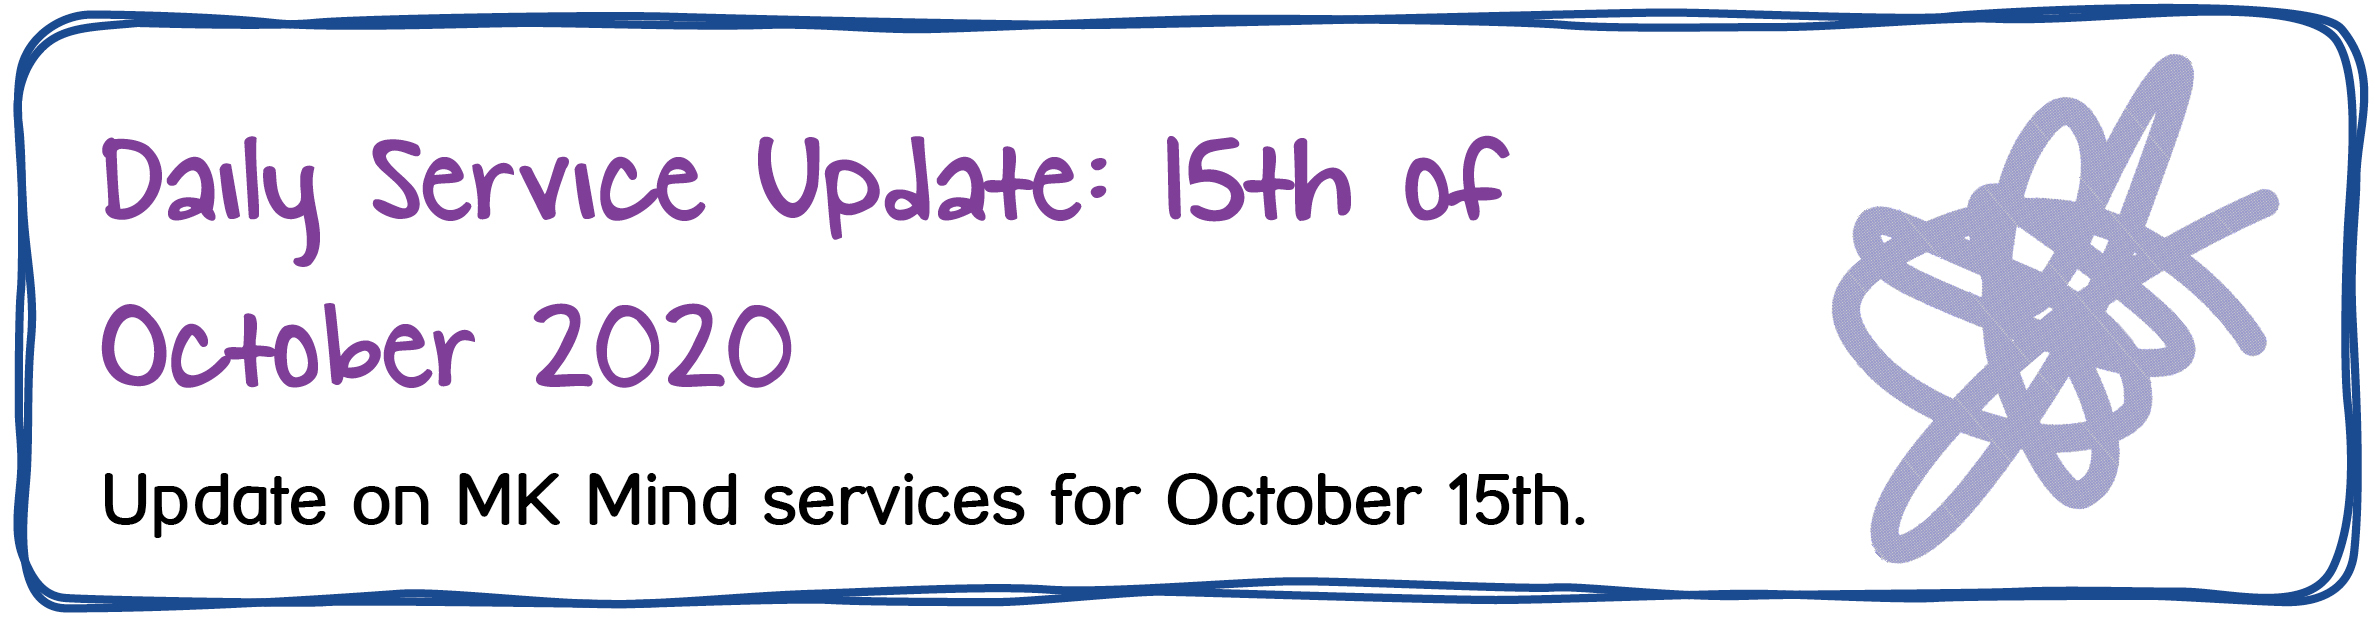 Daily Service Update: 15th of October 2020. Update on MK Mind services for October 15th.